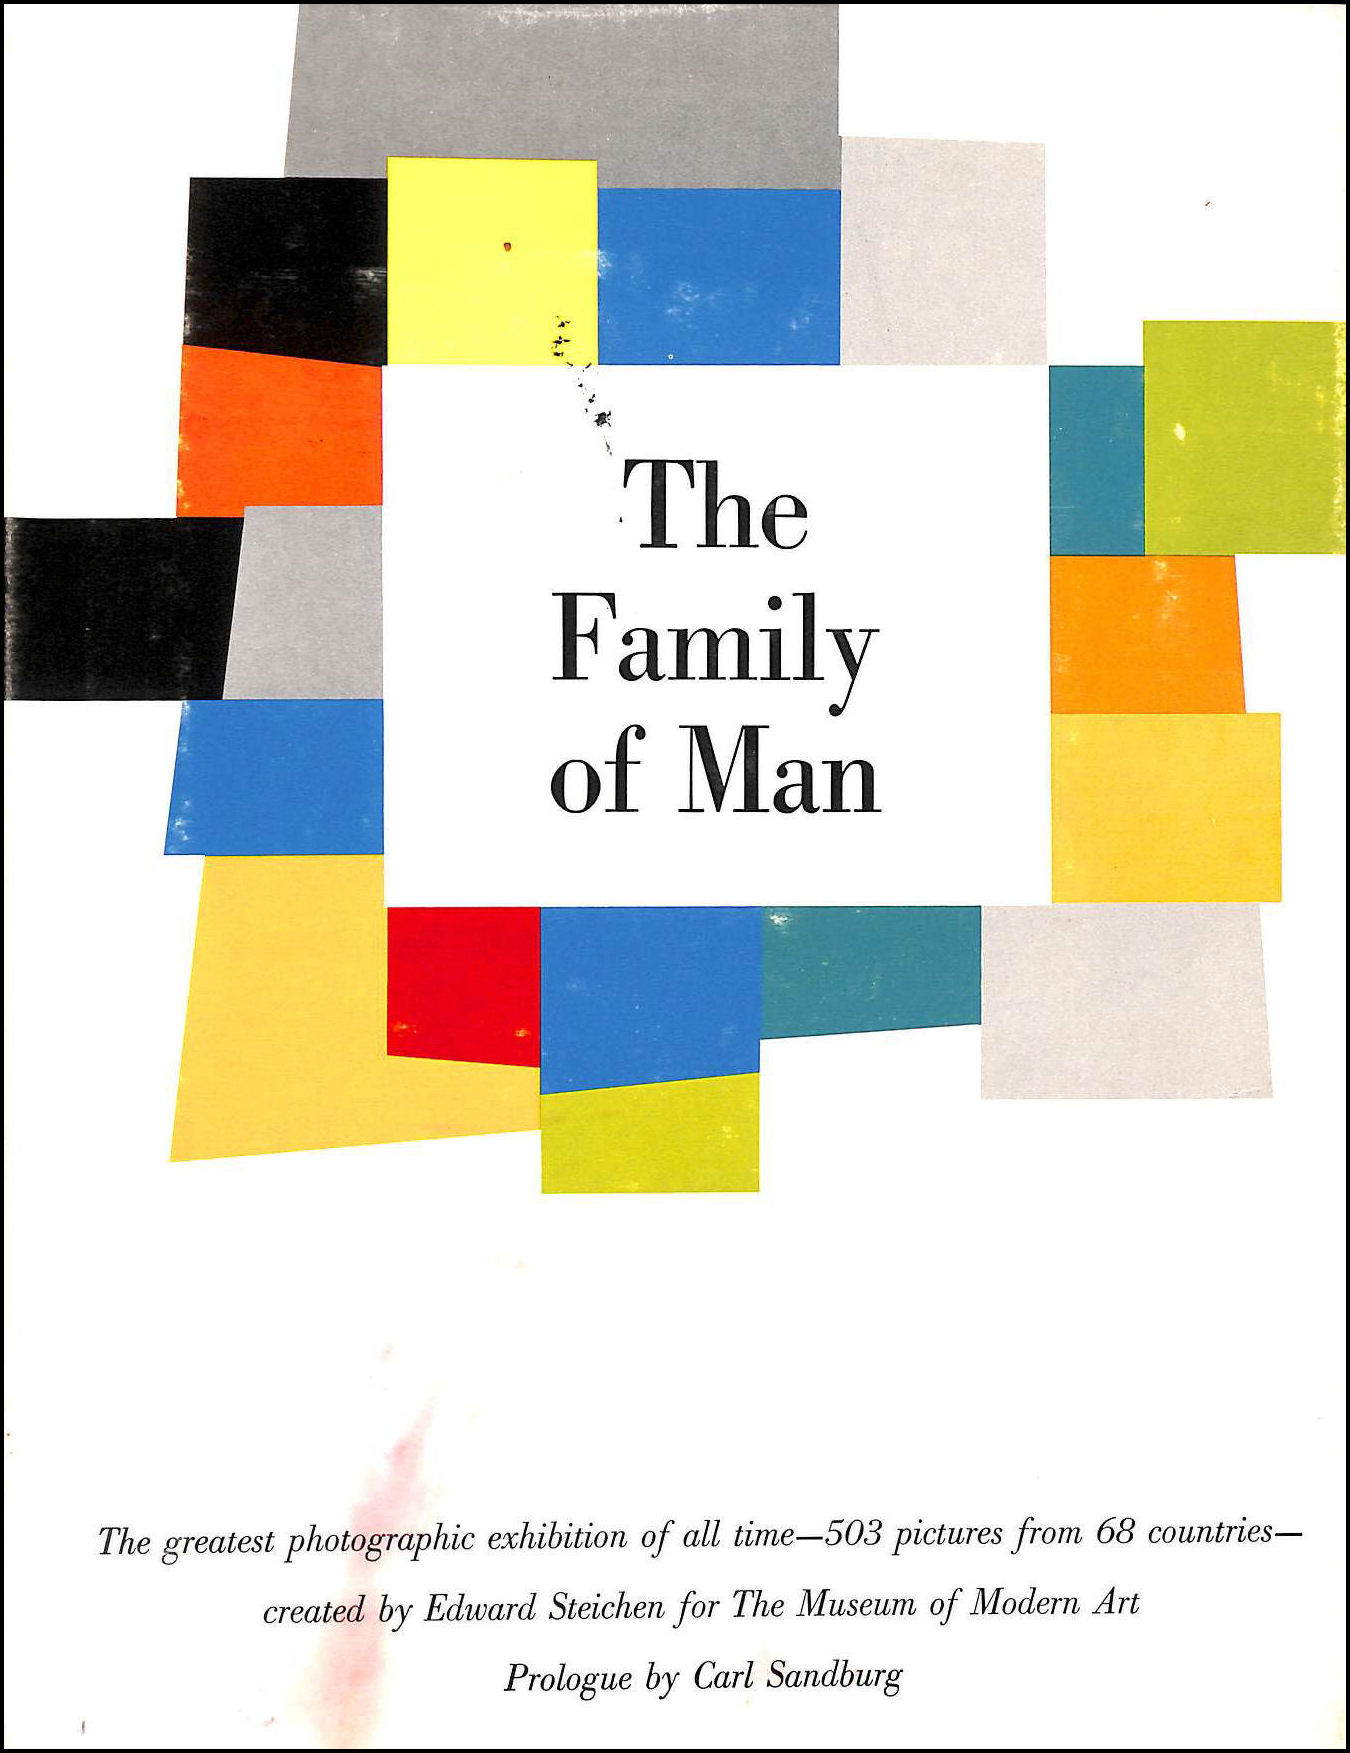 The Family of Man: The Greatest Photographic Exhibition of all Time - 503 Pictures from 68 Countries - Created by Edward Steichen for the Museum of Modern Art, Edward Steichen